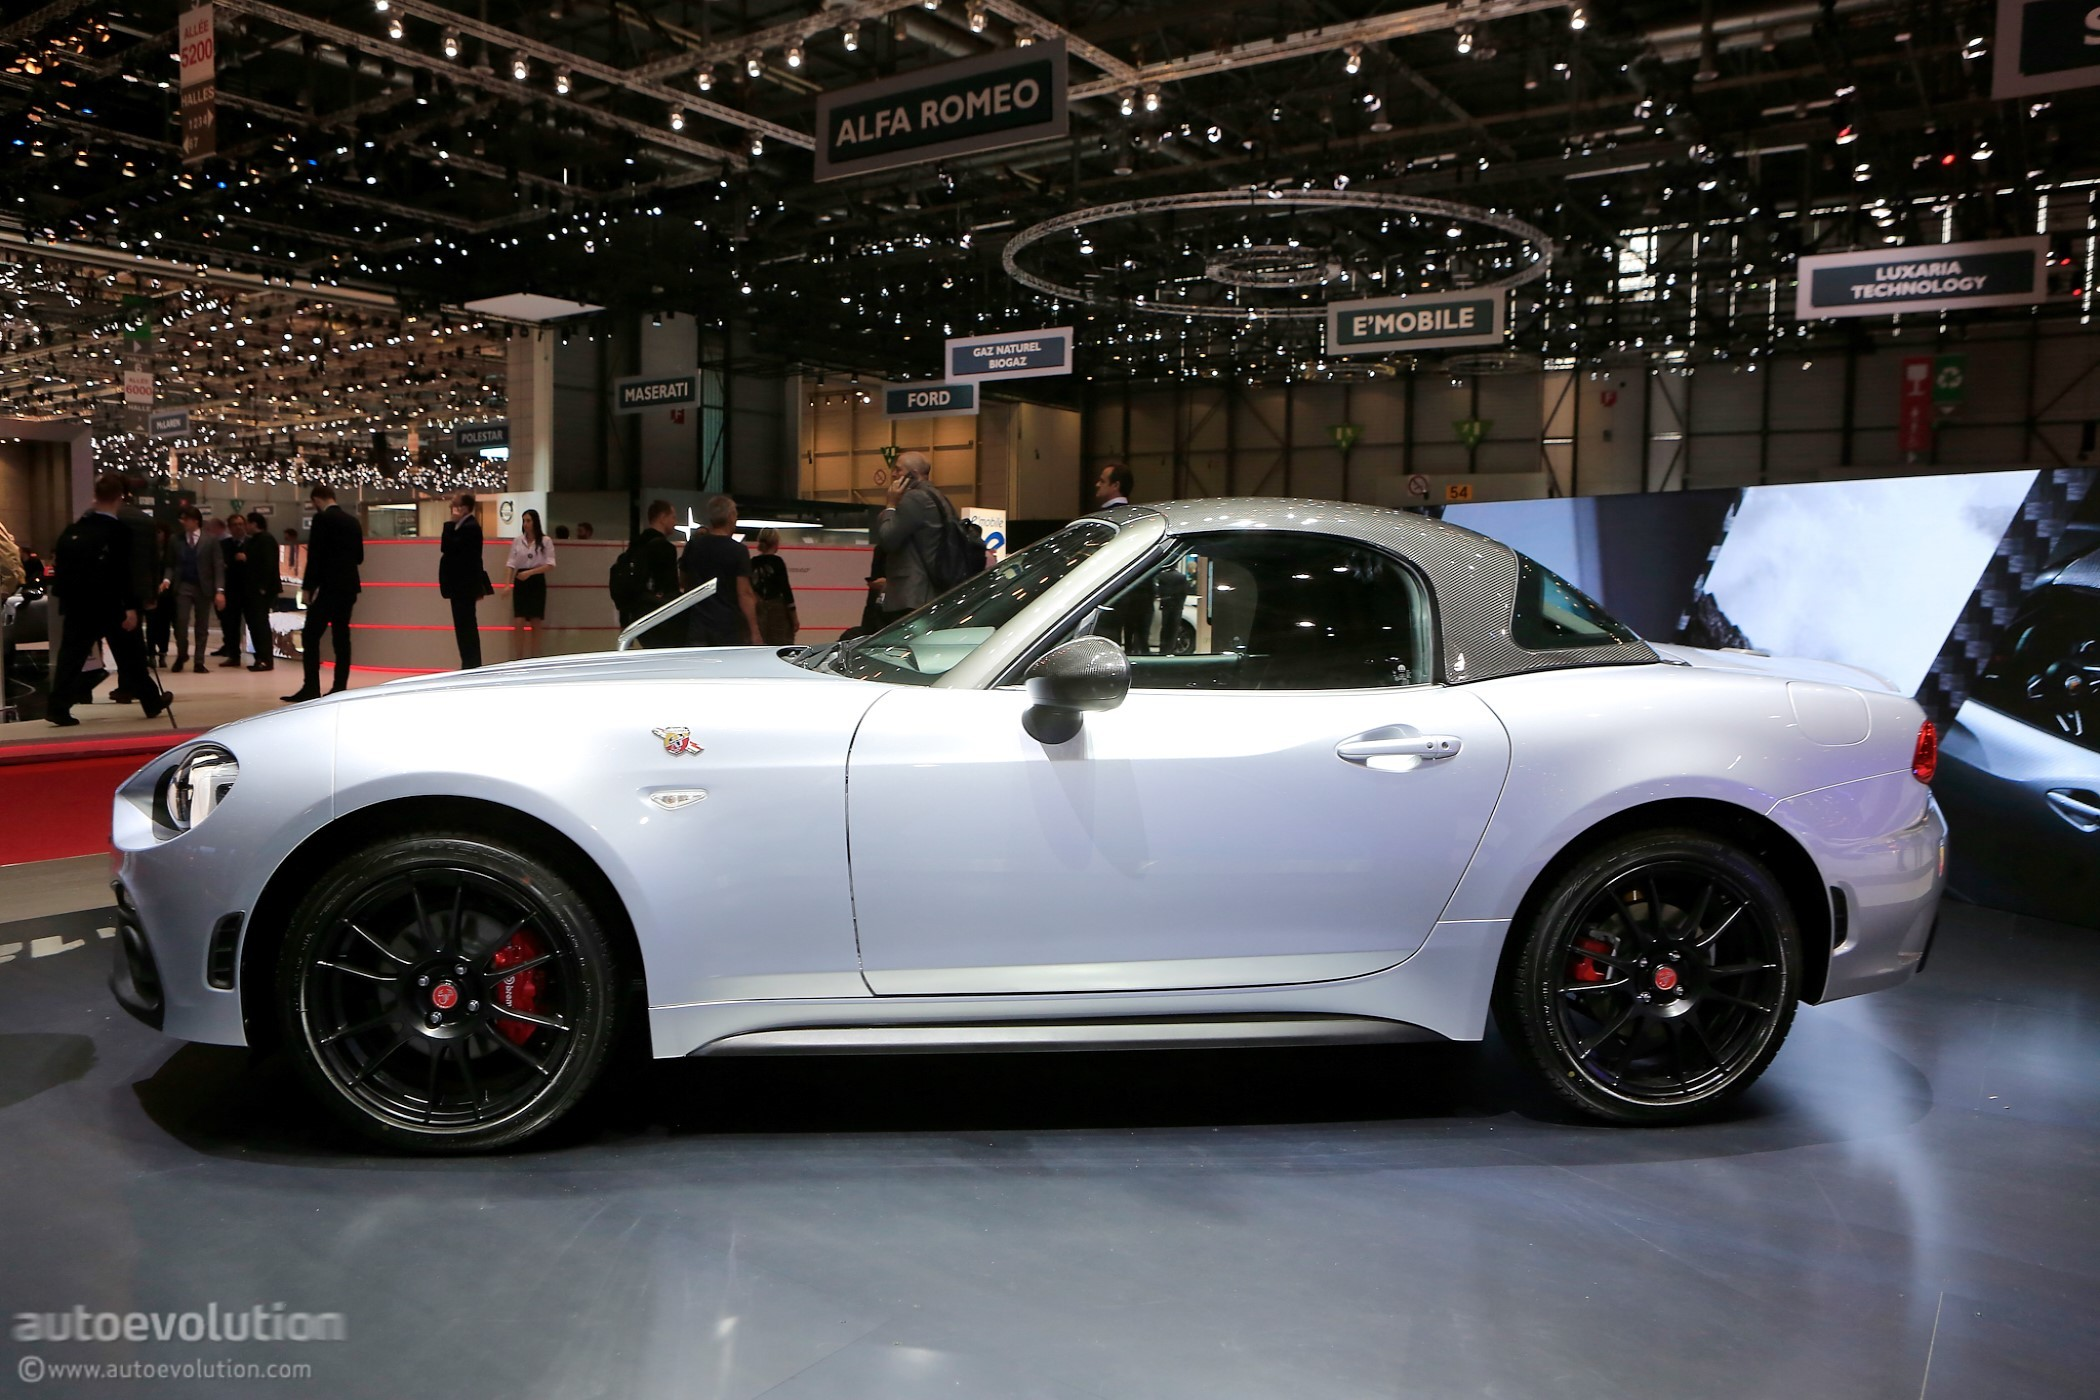 Fiat 500 Coupe Zagato Rumored To Reach Production In 2013